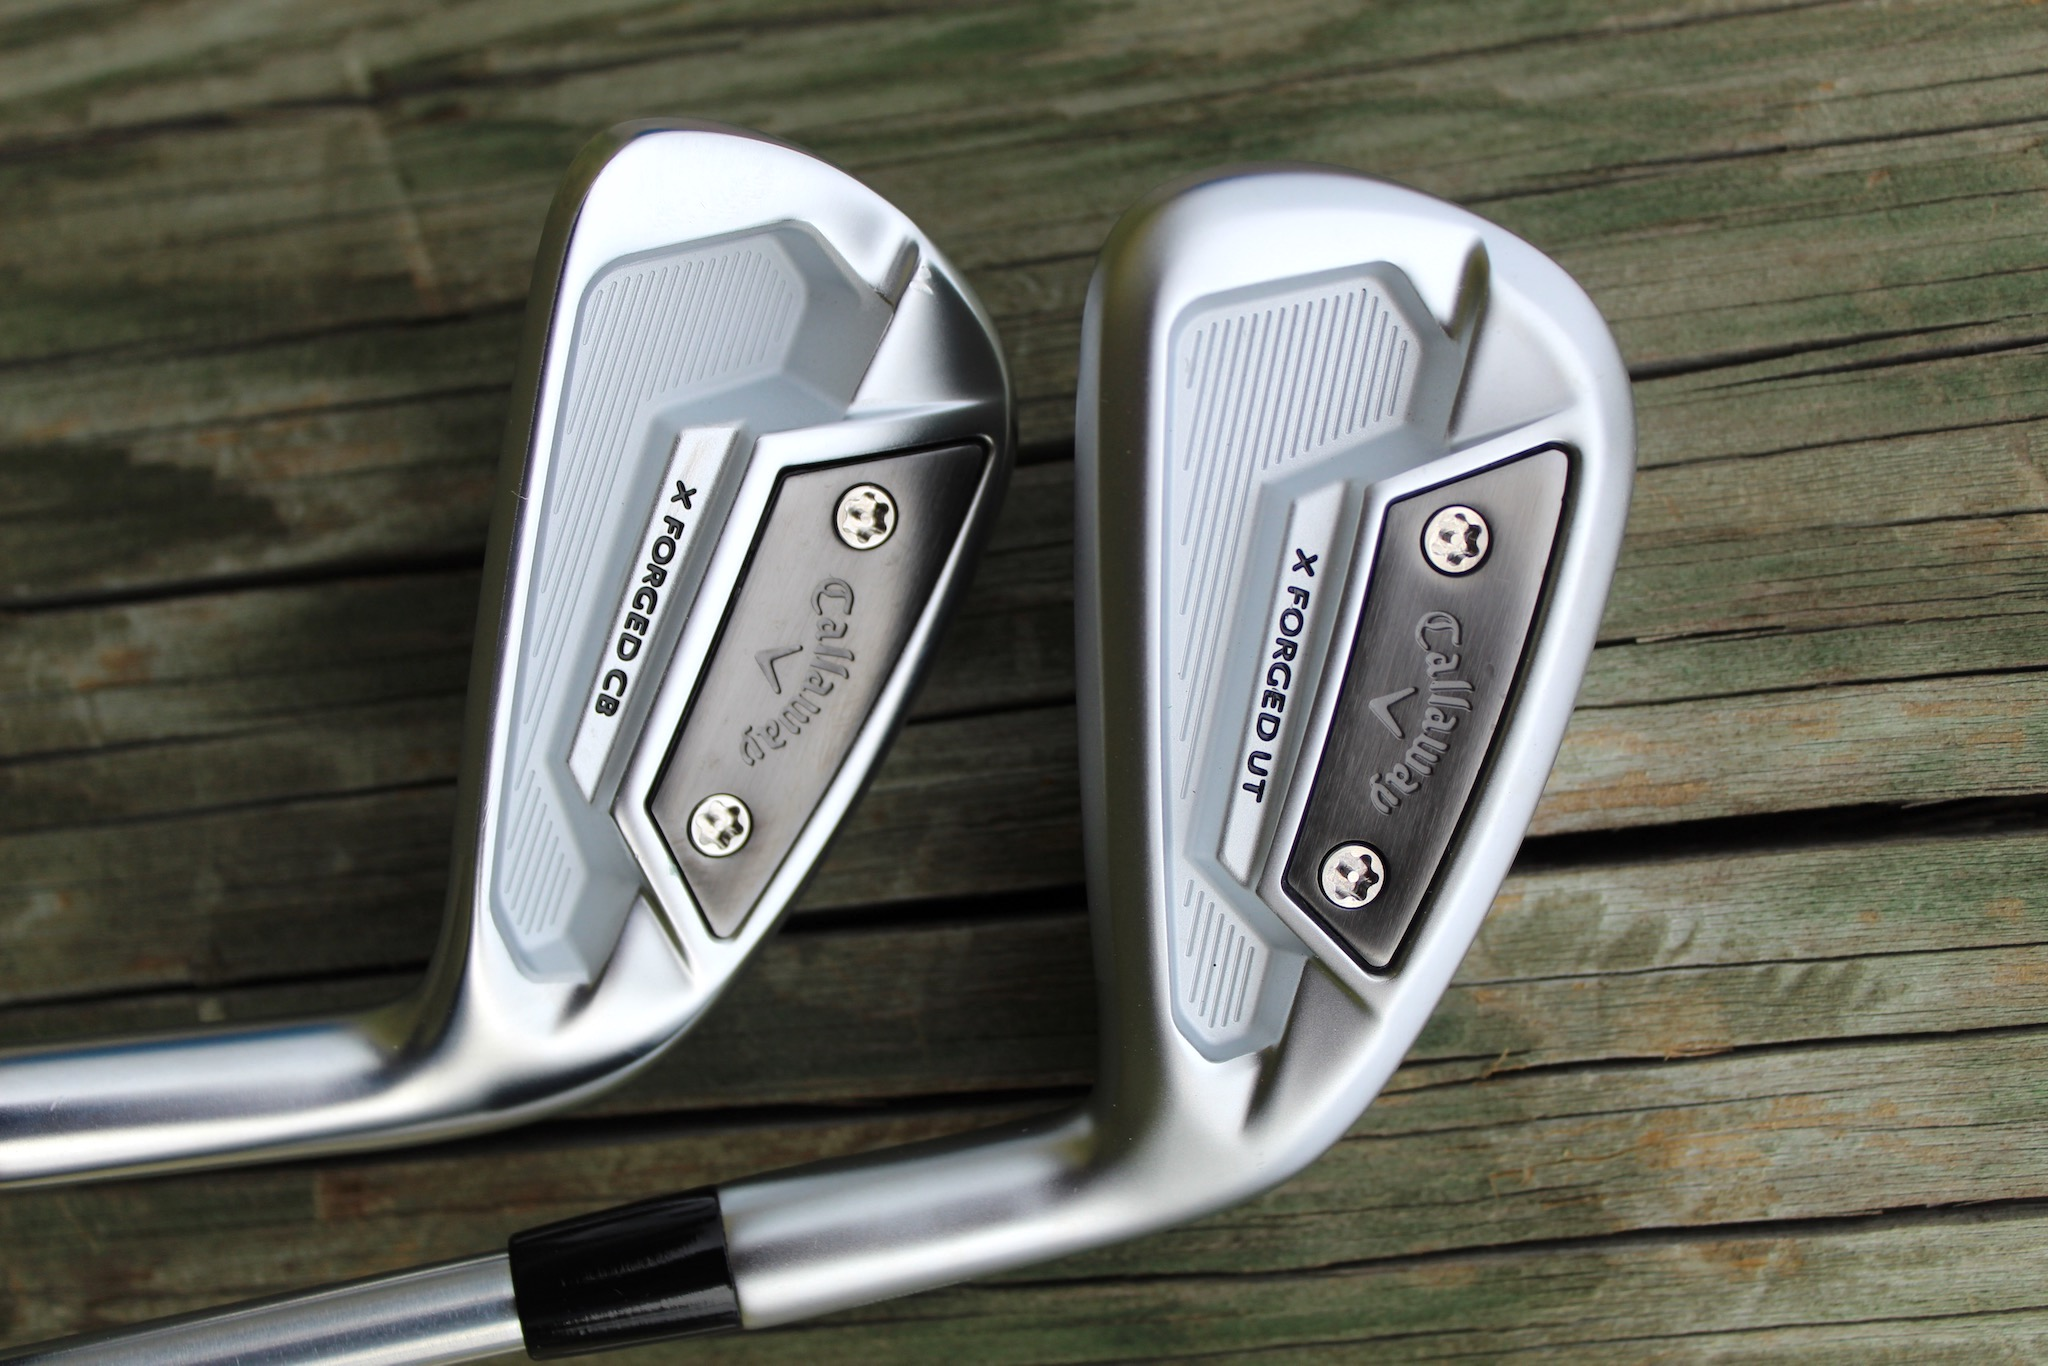 2021-callaway-x-forged-irons